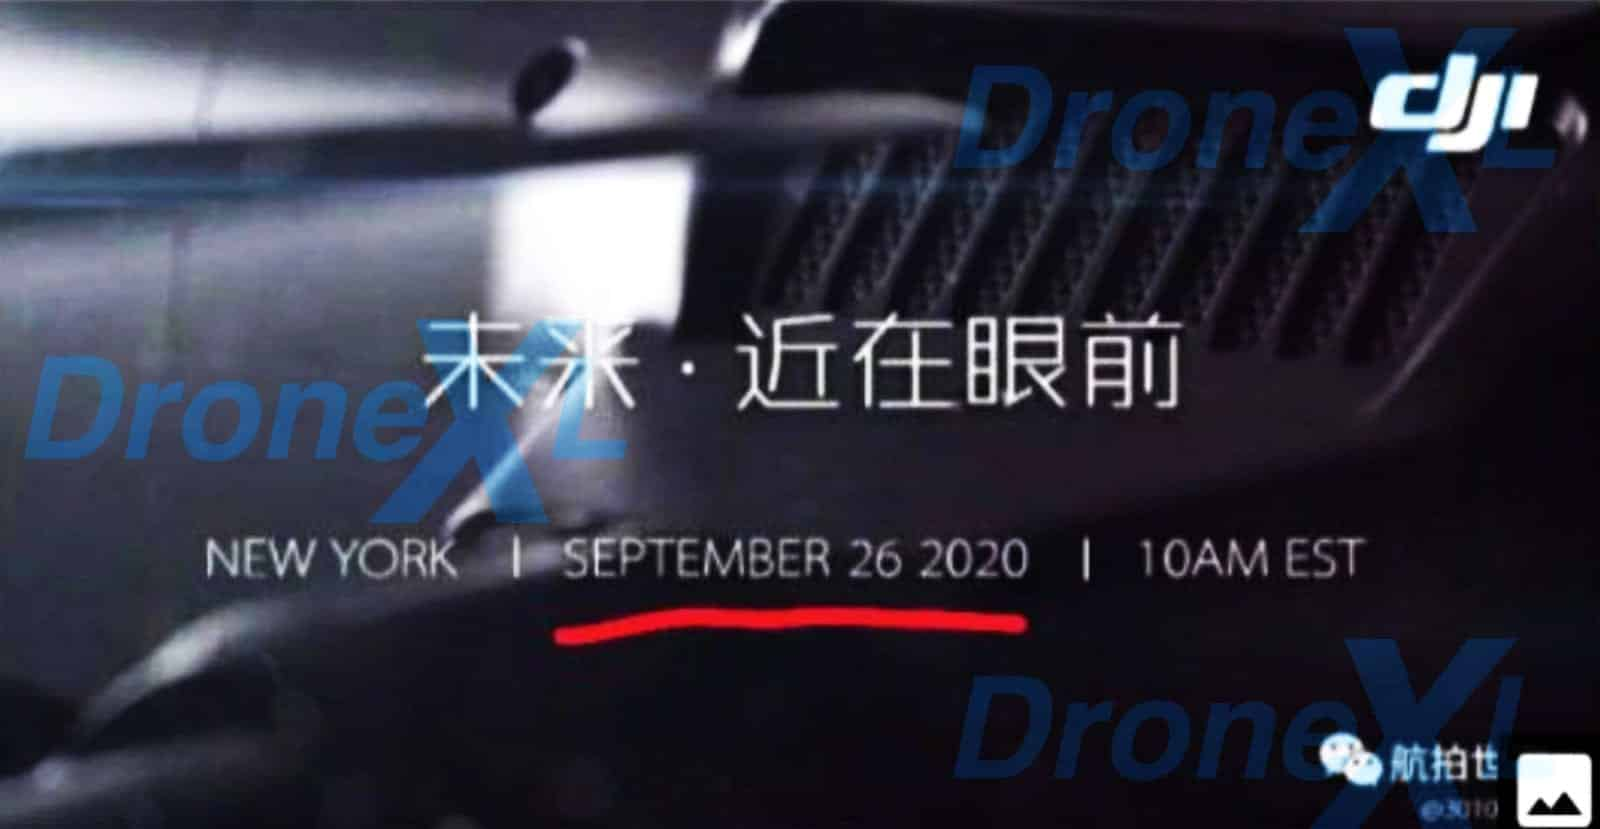 Mavic 3 release date September 26th, says leaked DJI announcement